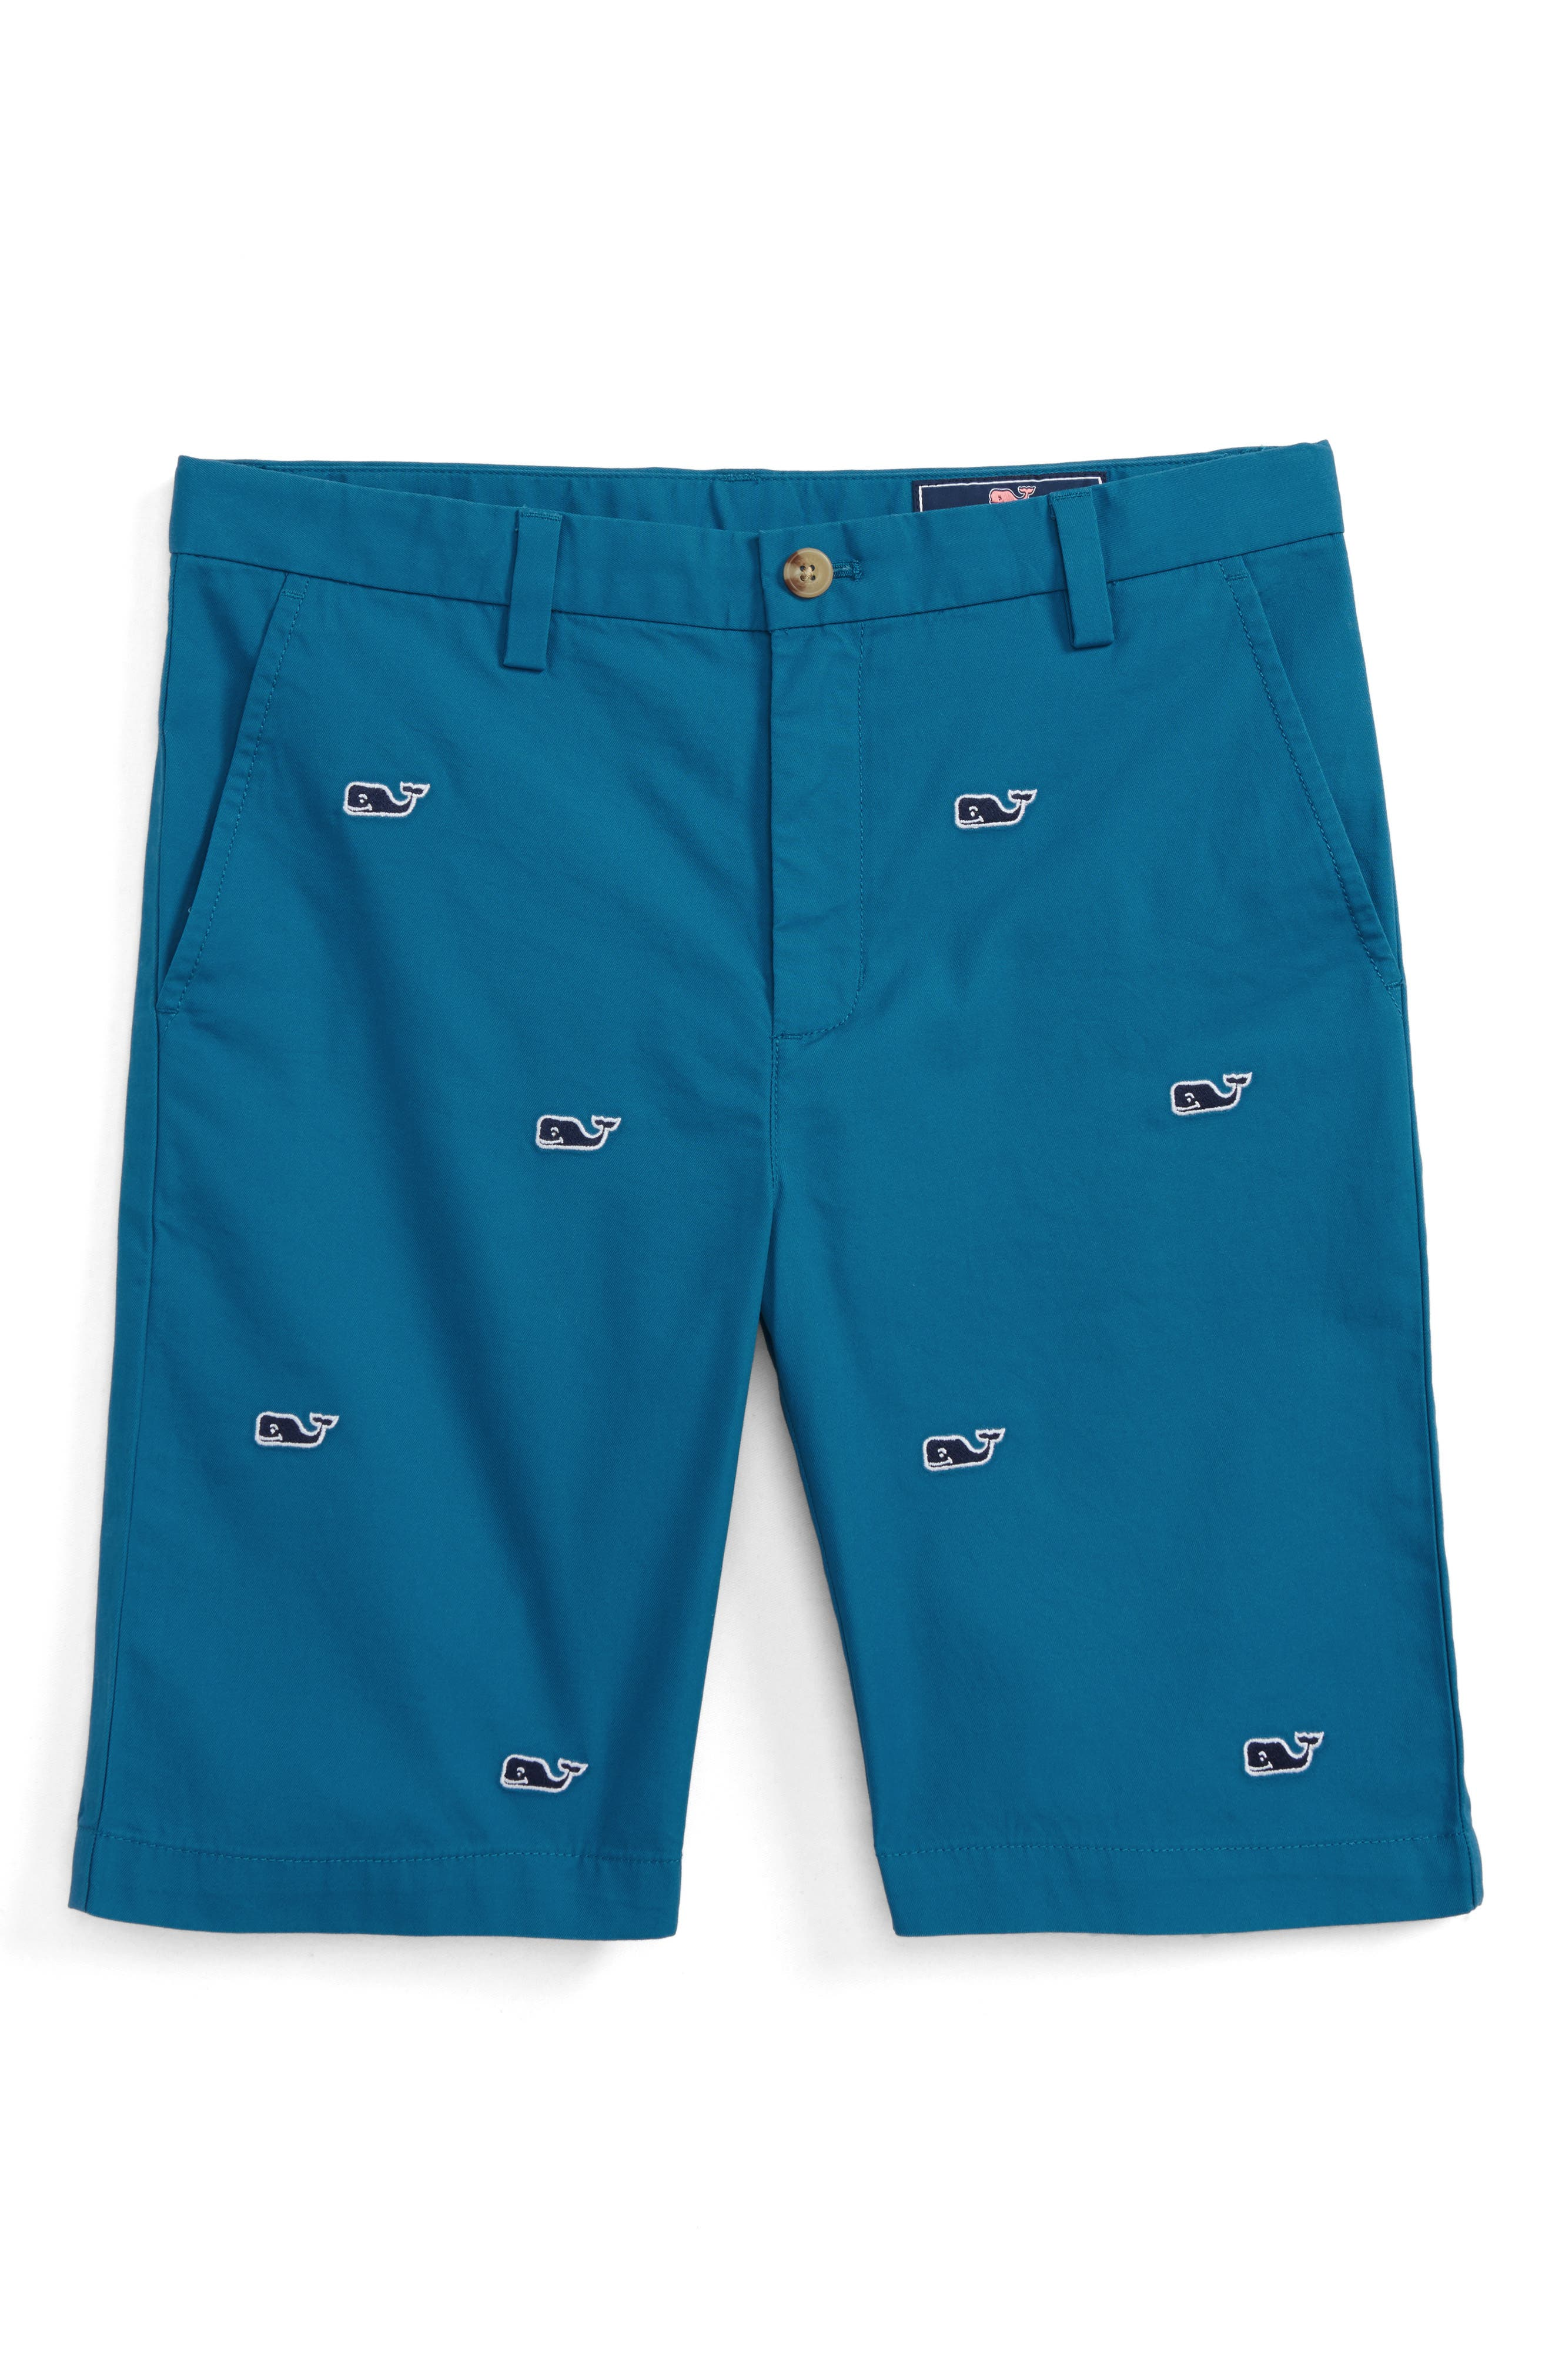 Breaker Whale Embroidered Shorts,                             Main thumbnail 1, color,                             401